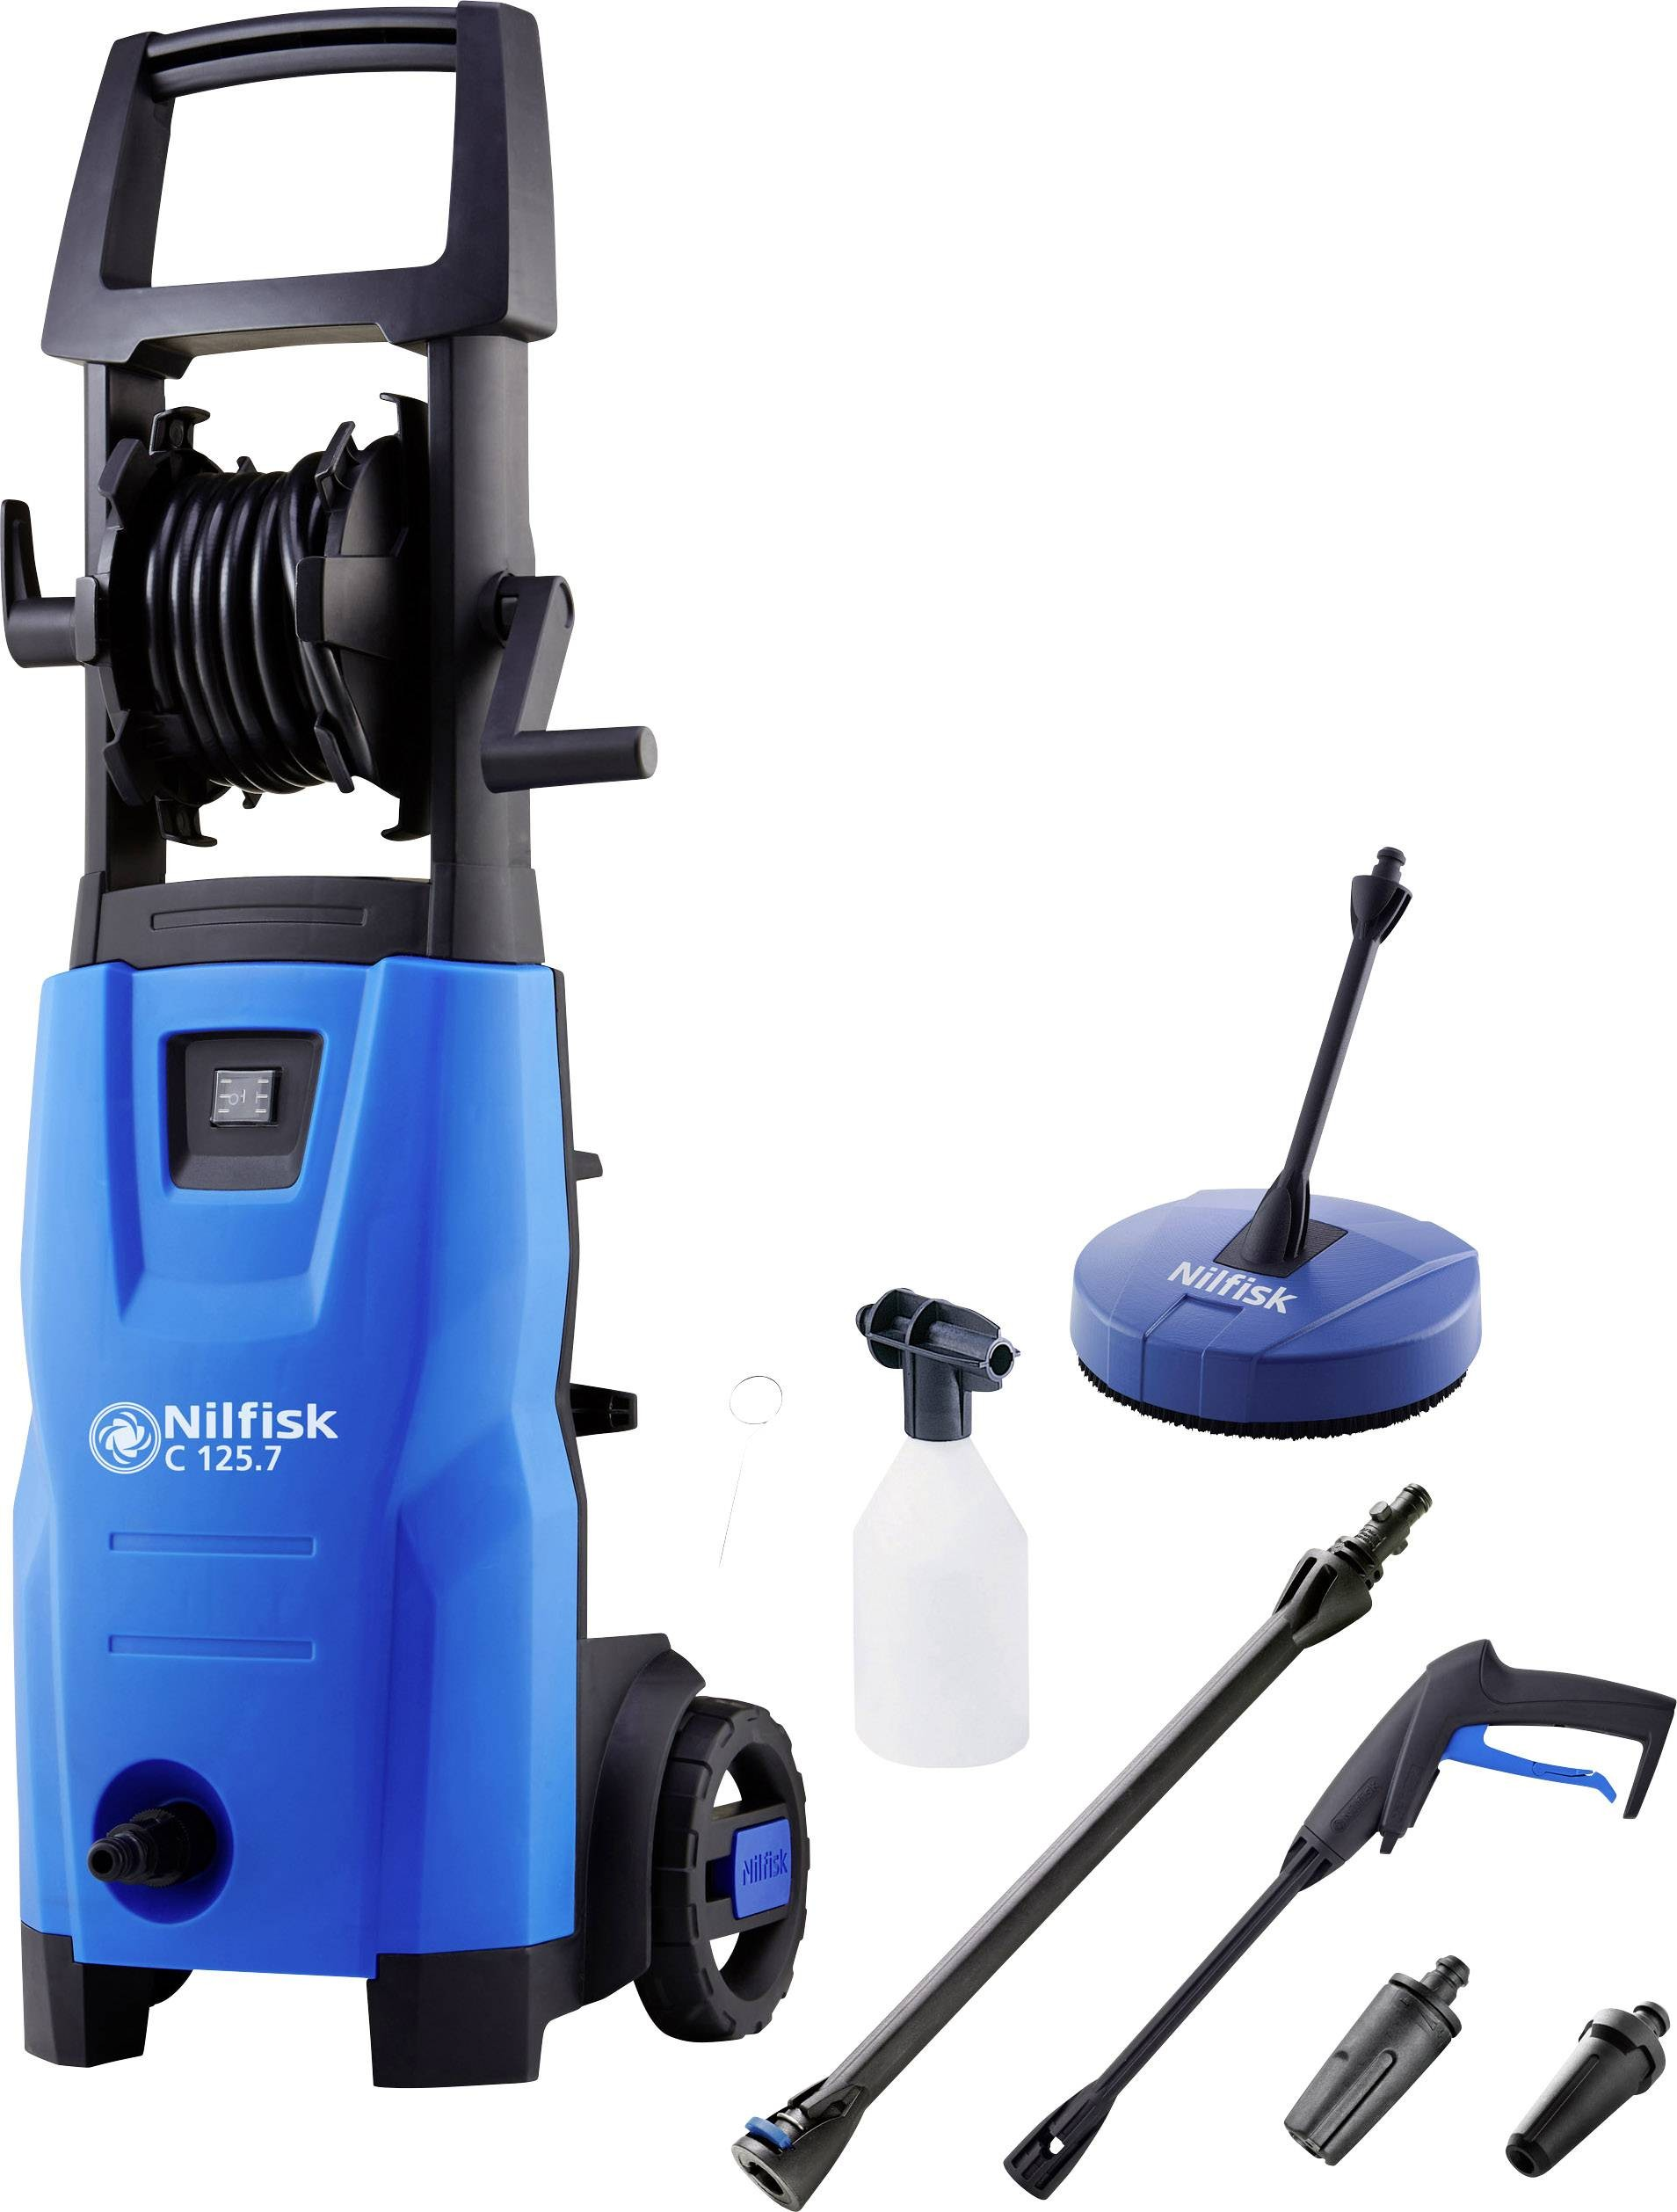 GOOD RANGE OF PRESSURE WASHERS IN STOCK TO SUIT ALL BUDGETS